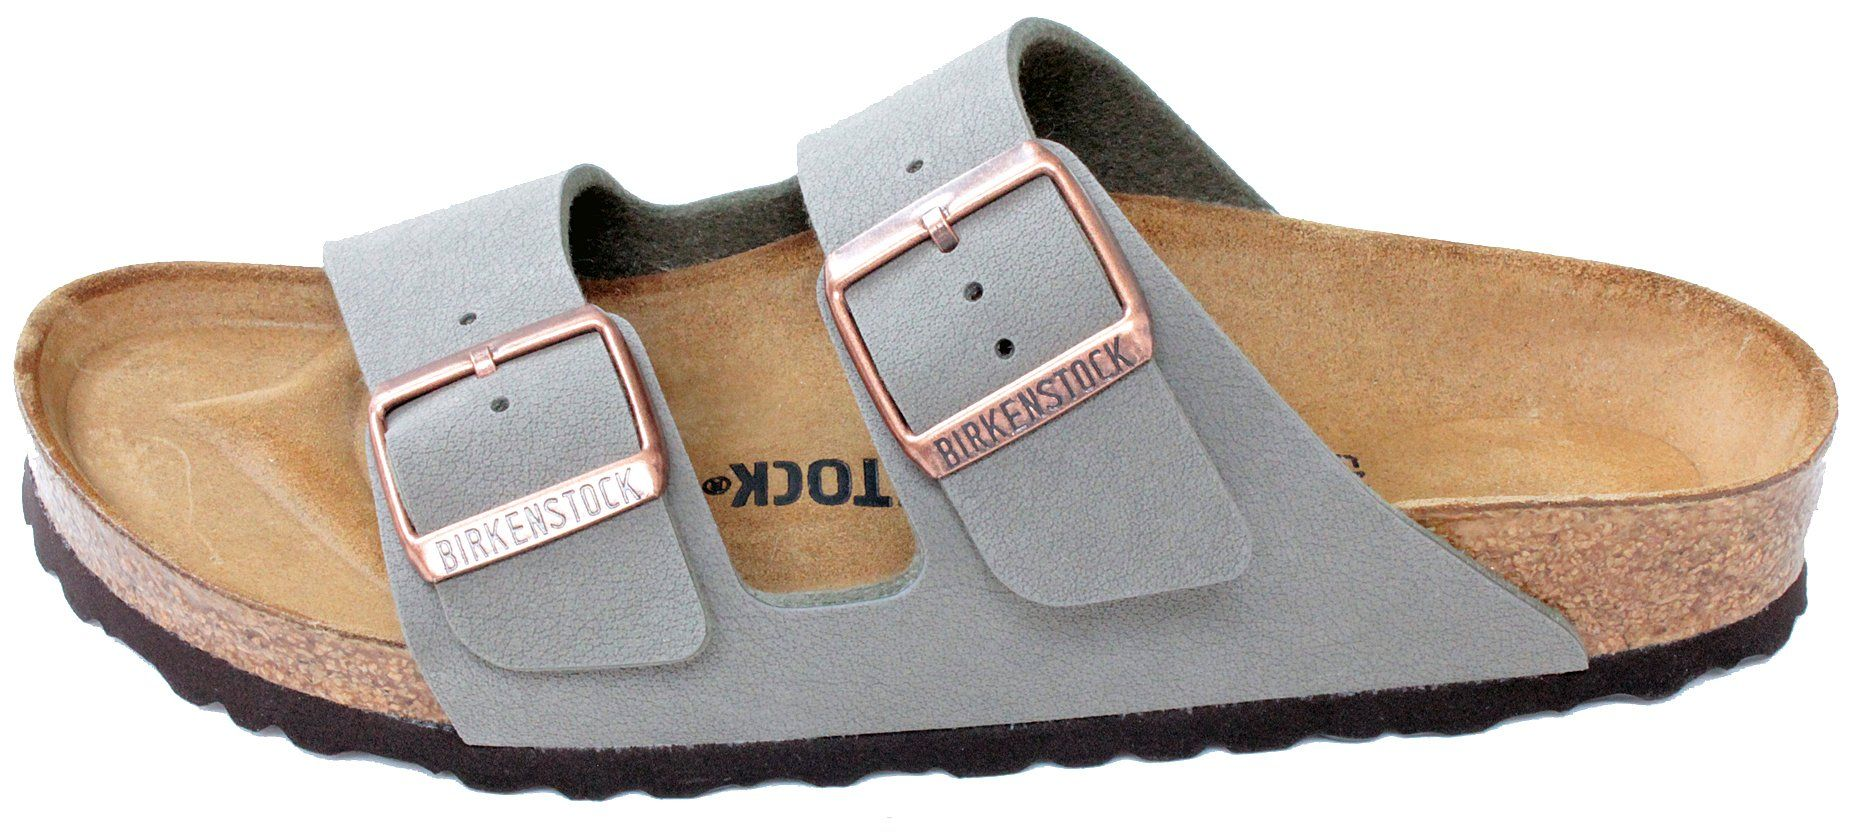 fdf376e5da Birkenstock Arizona 2Strap Womens Sandals in Stone BirkoFlor 39 N EU Narrow    You can get additional details at the image link. (This is an affiliate  link)